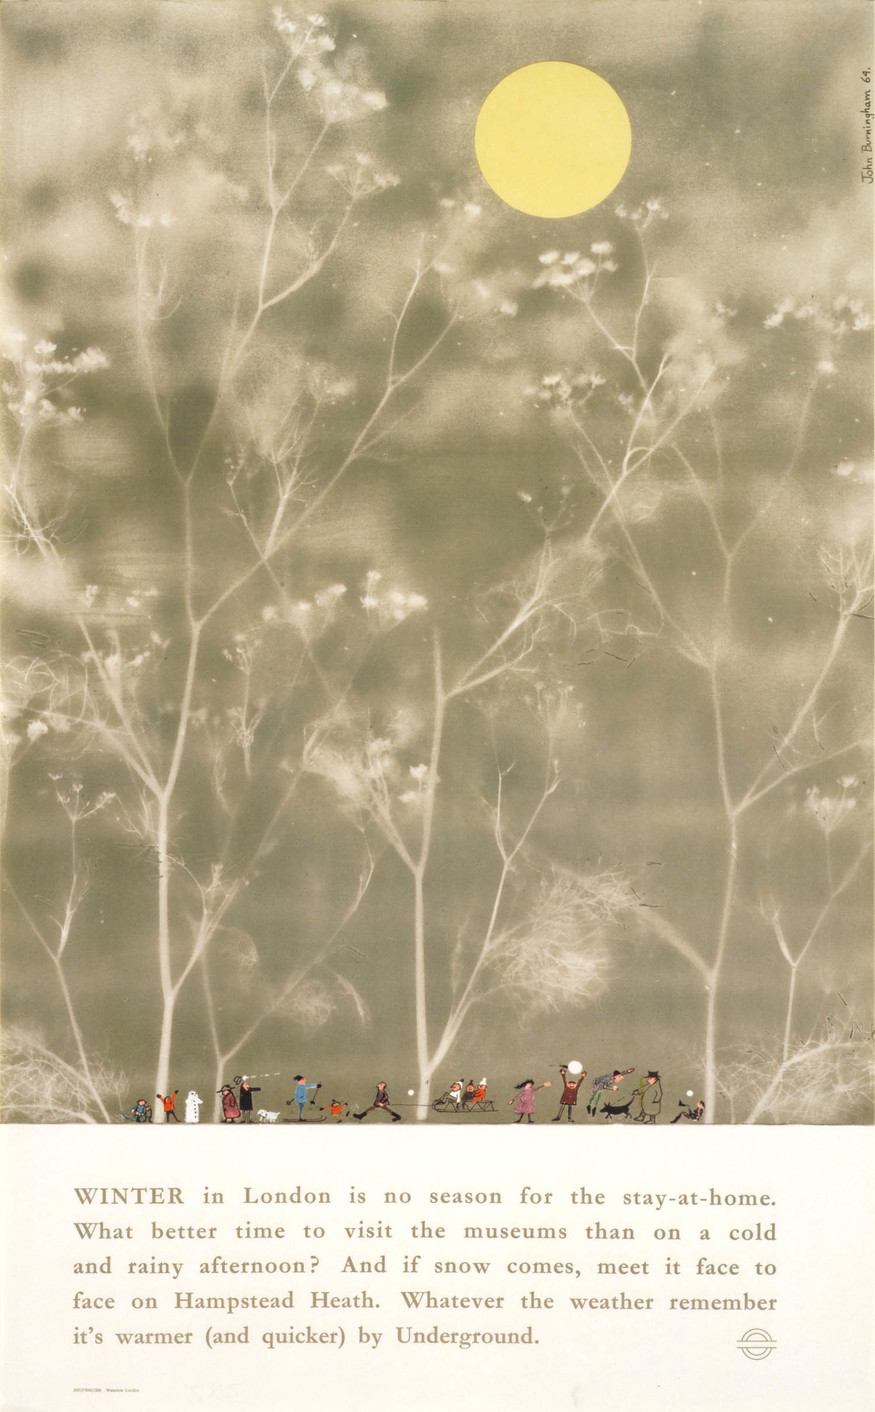 Winter in London, by John Burningham, 1965